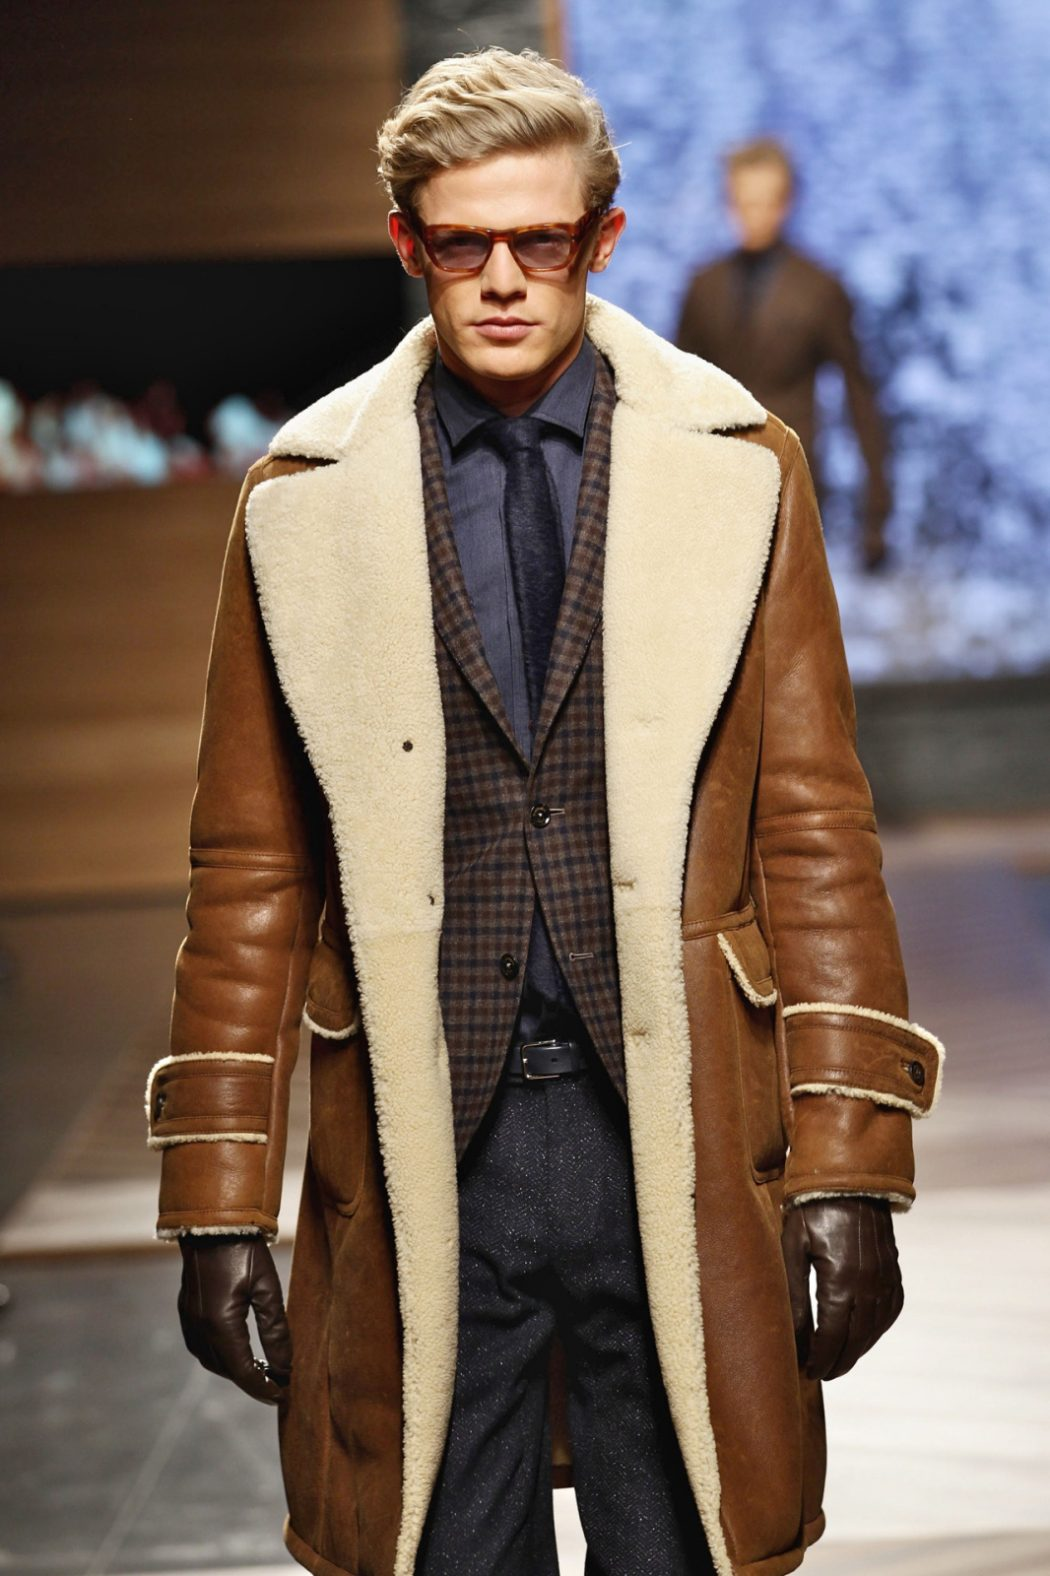 Shearling3 25+ Winter Fashion Trends for Handsome Men in 2018